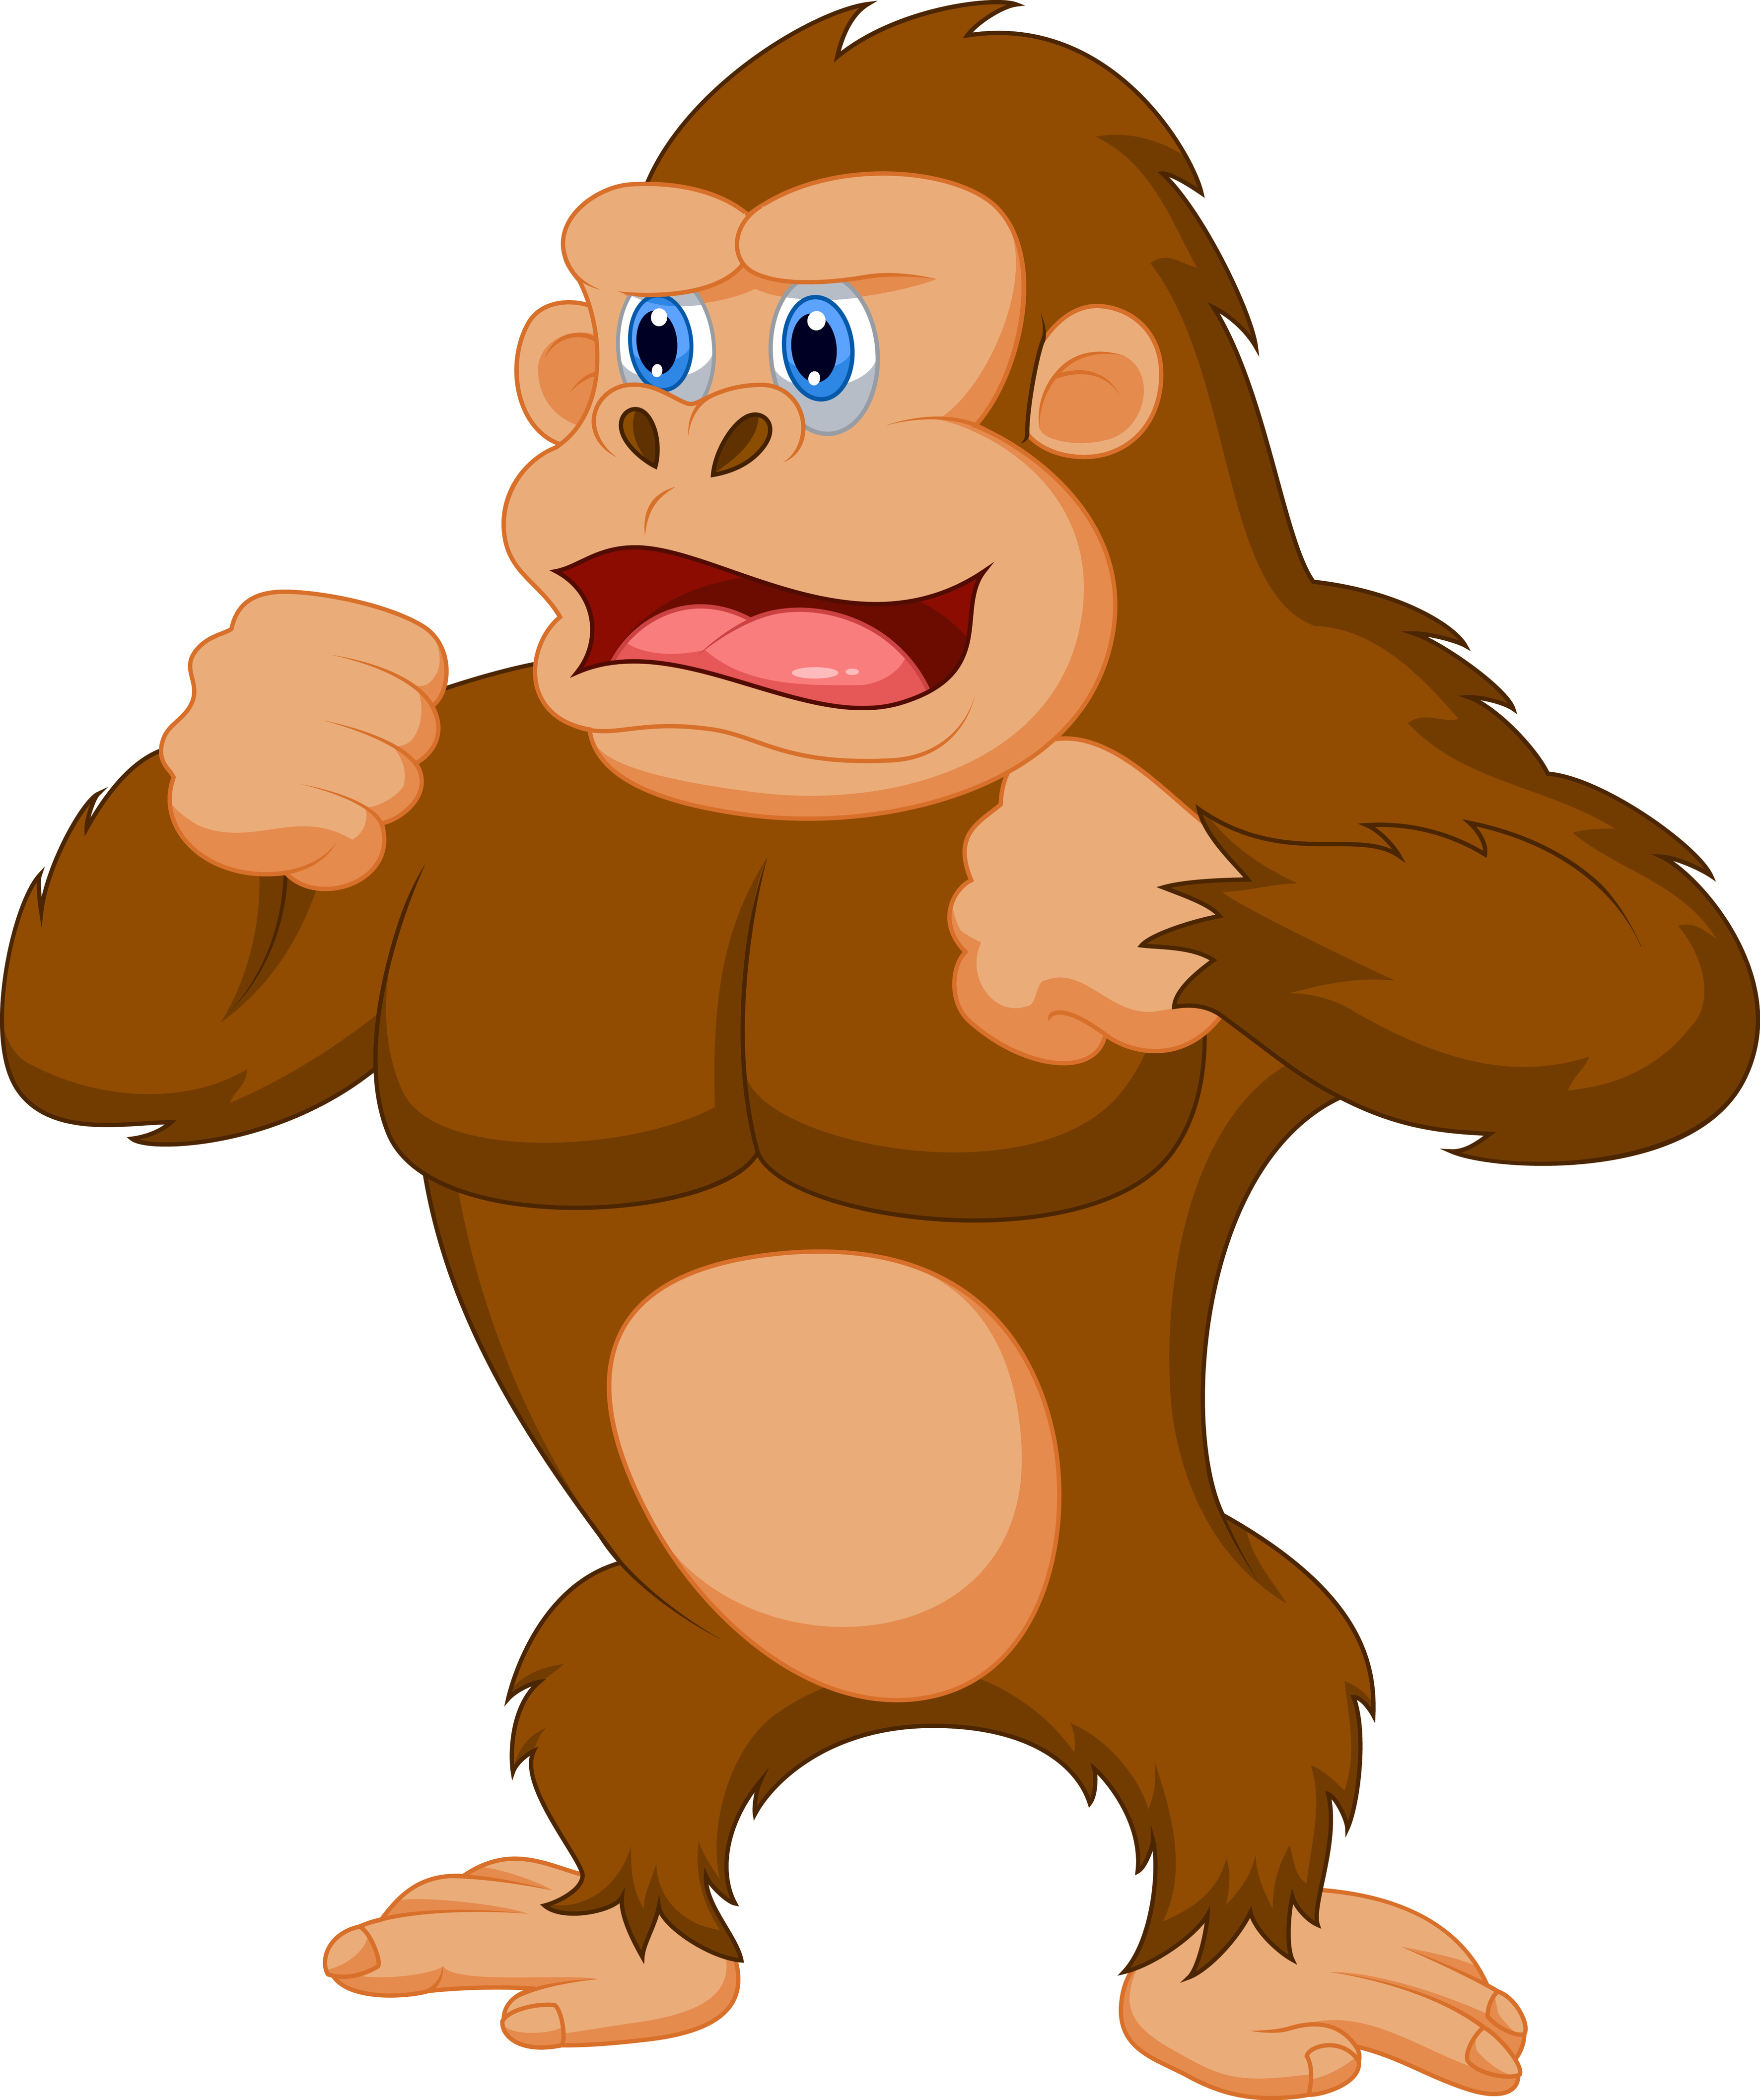 Ape clipart. For free images